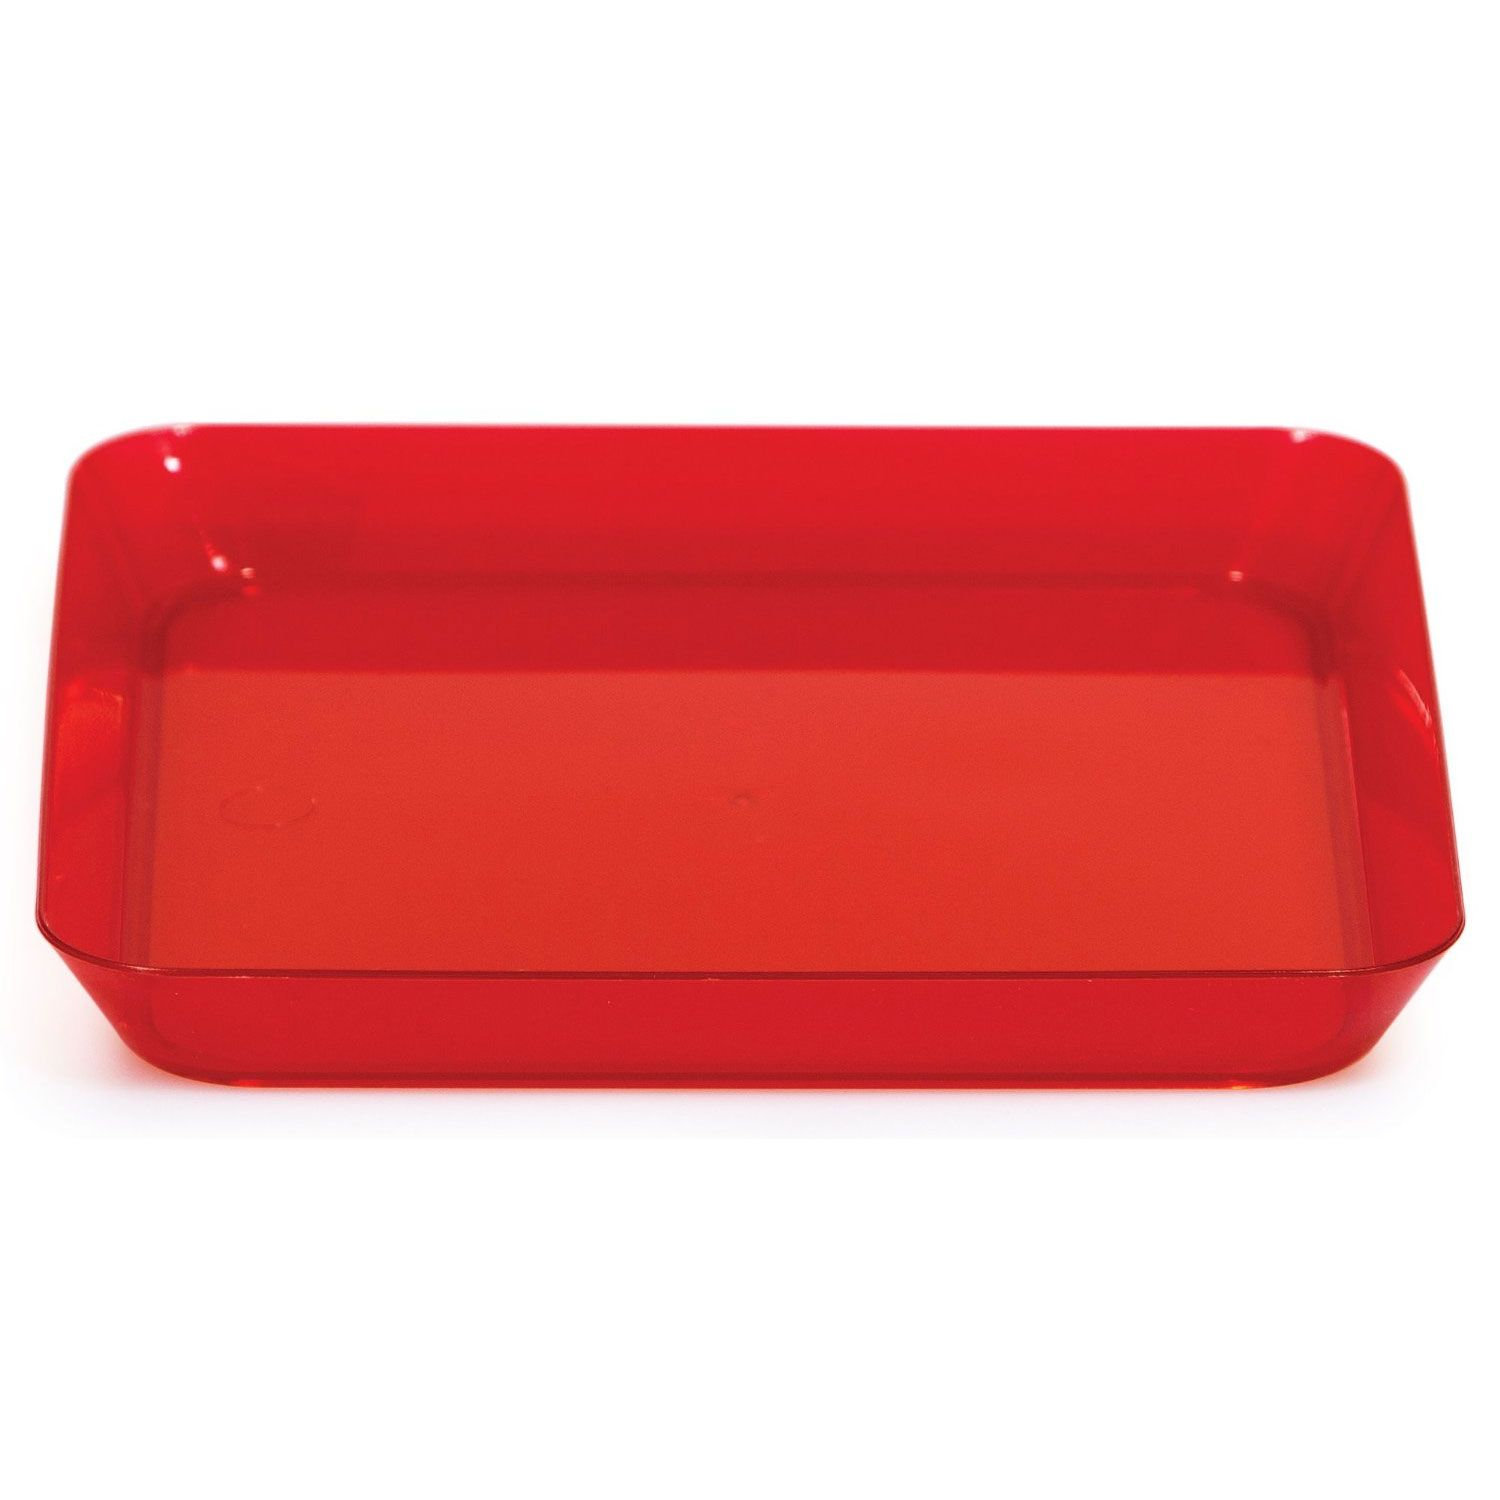 Translucent Red 5 inch Plastic Square Plate/Case of 96 Tags Dessert Plates;  sc 1 st  Pinterest & Translucent Red 5 inch Plastic Square Plate/Case of 96 Tags: Dessert ...